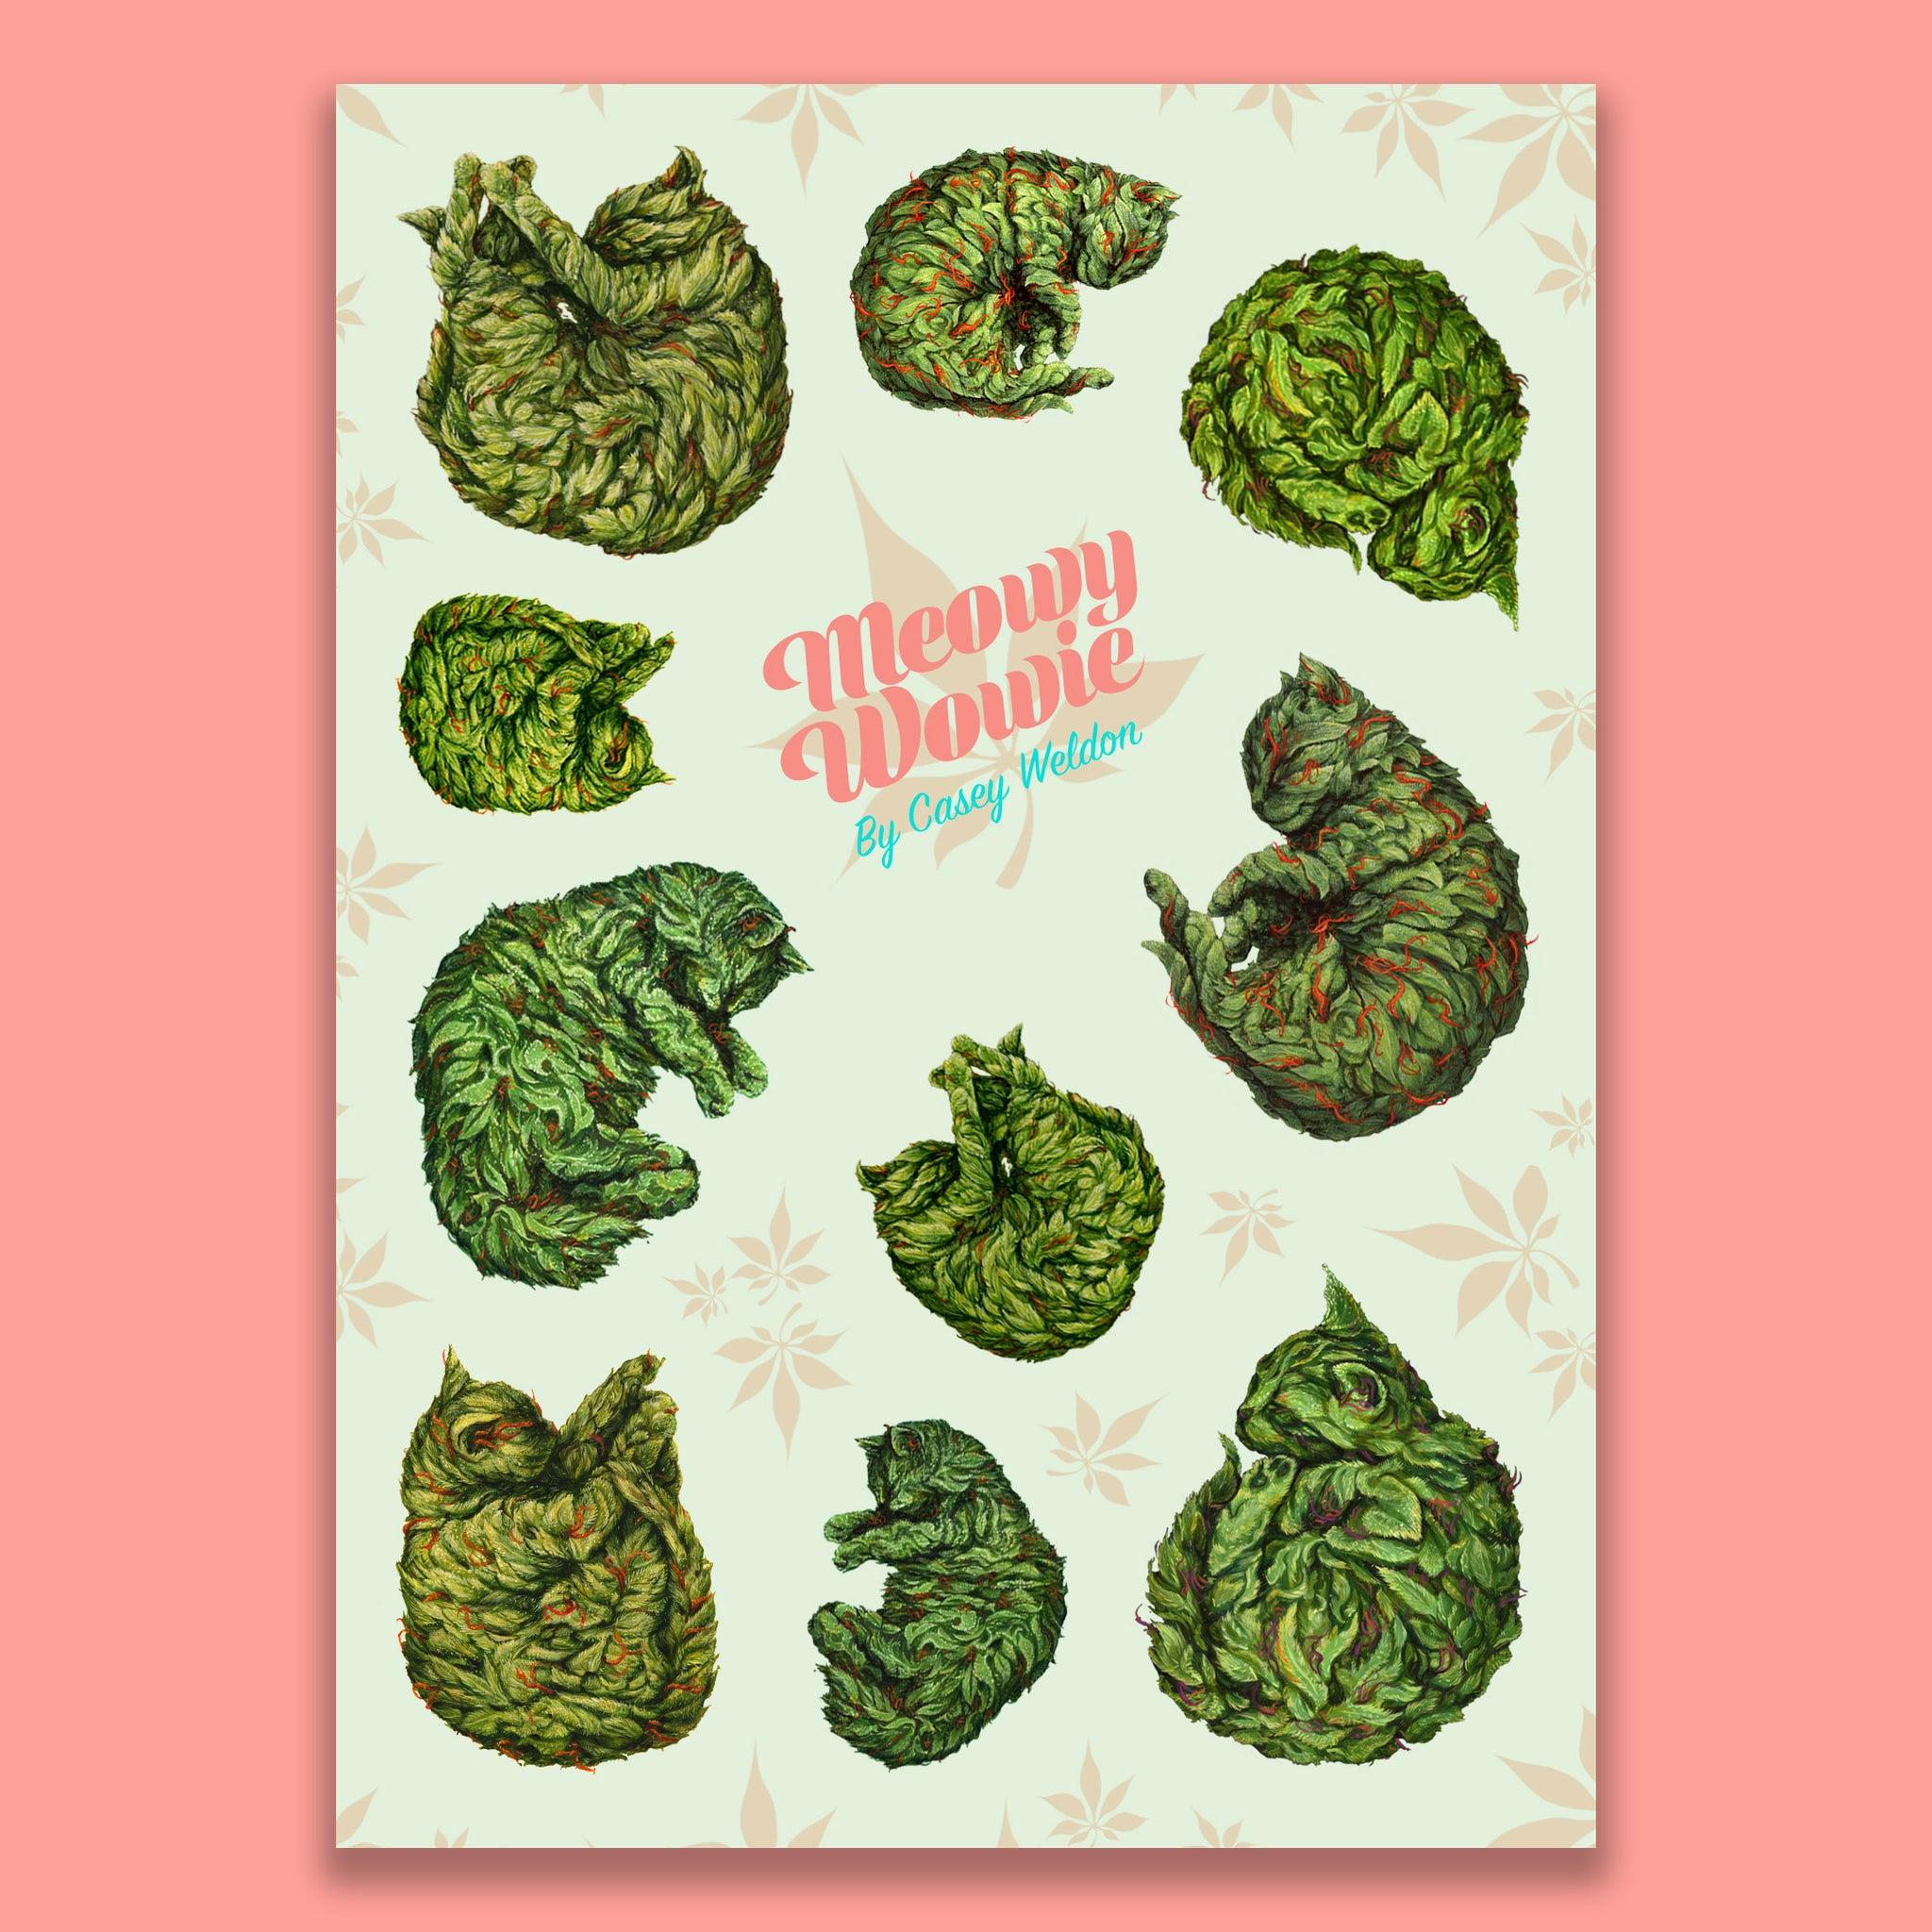 Casey Weldon - Meowy Wowie Sticker Sheet